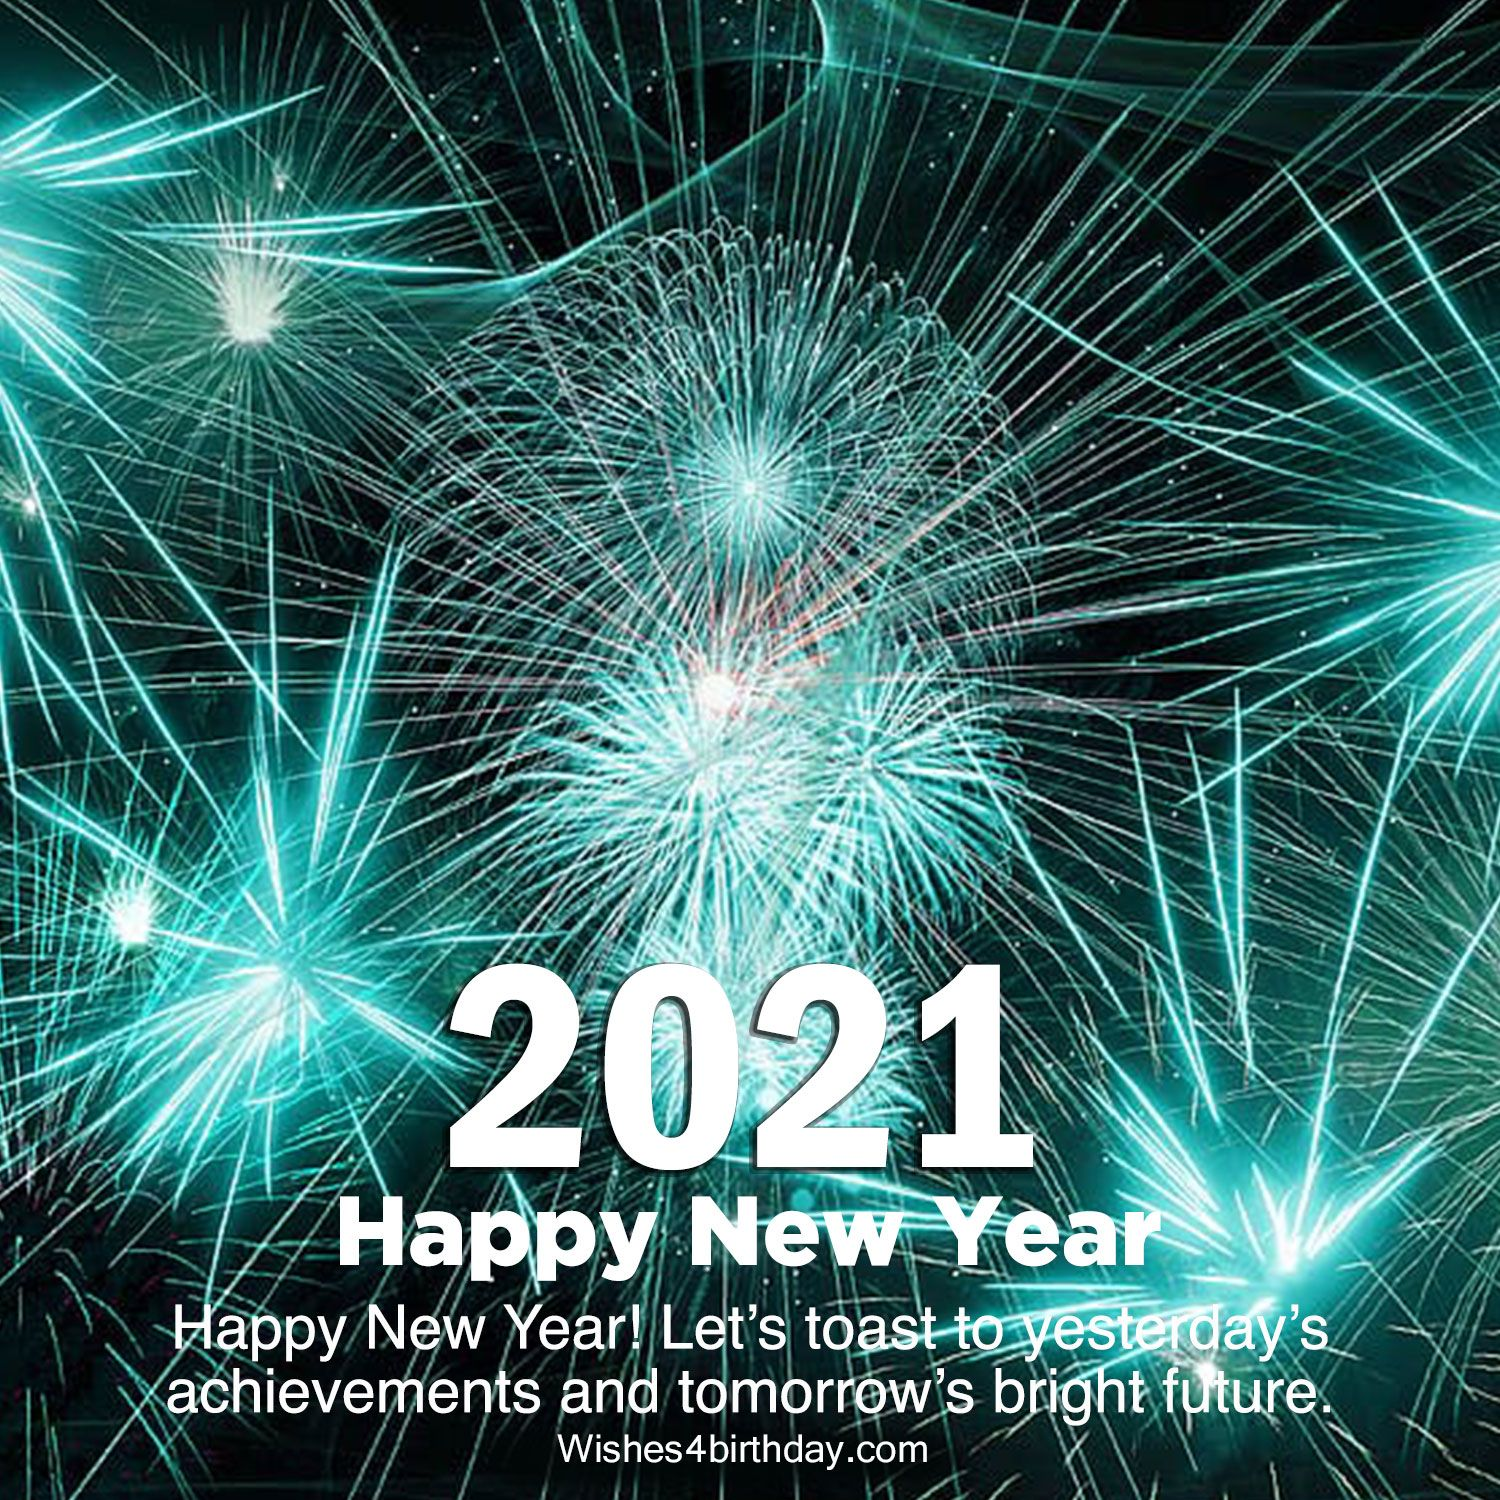 Happy New Year 2021 Countdown Starts Now Happy New Year Greetings Happy New Year Pictures Happy New Year Images